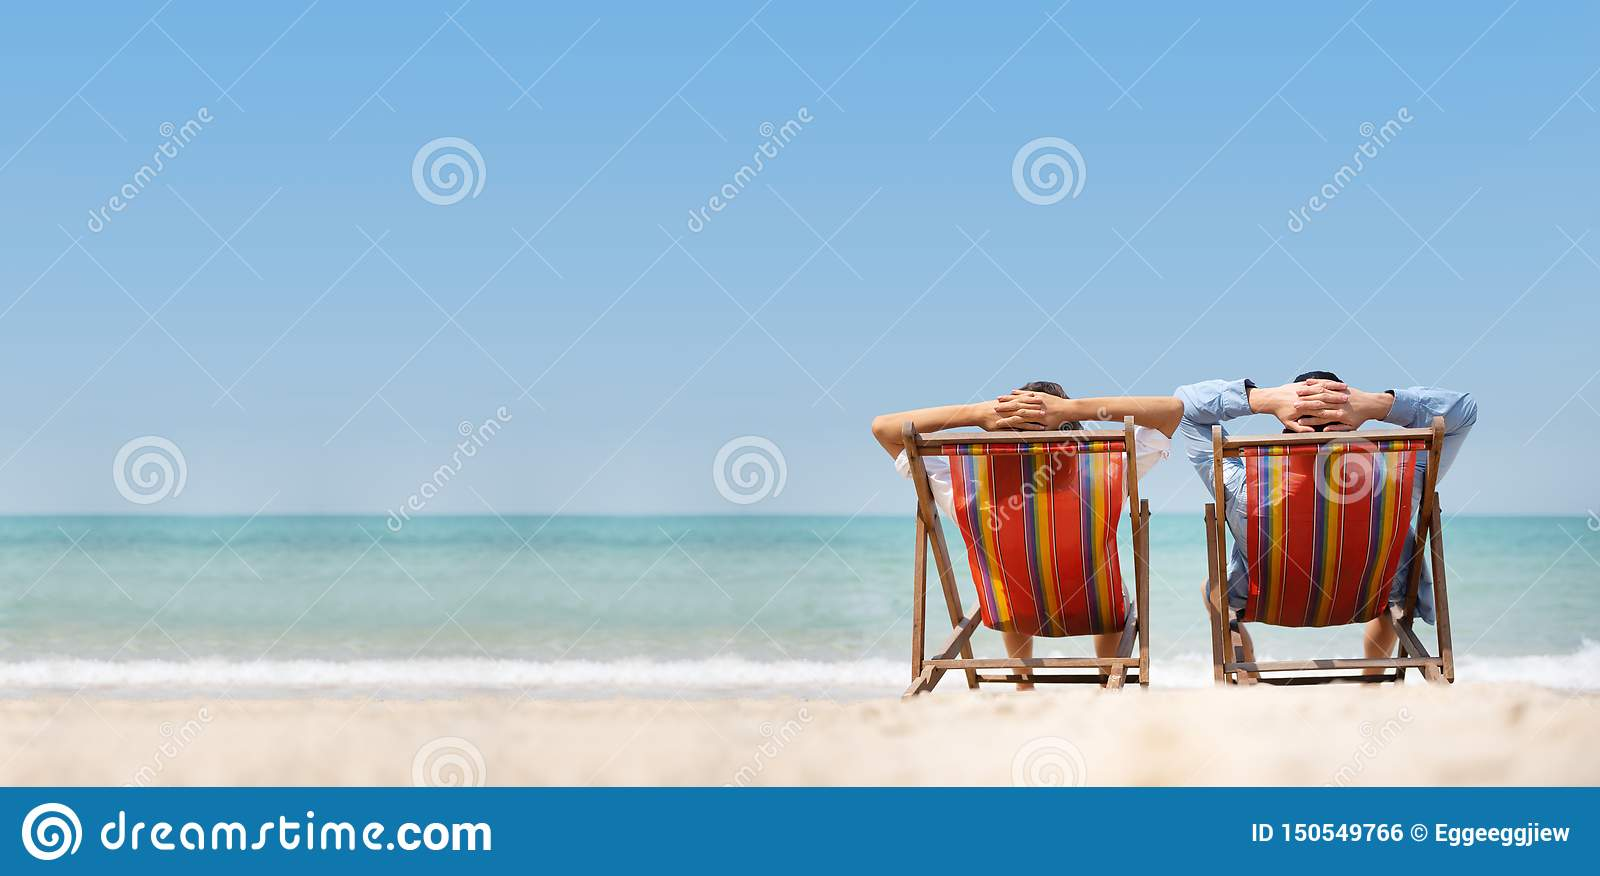 Couple relaxing on chair beach over sea background